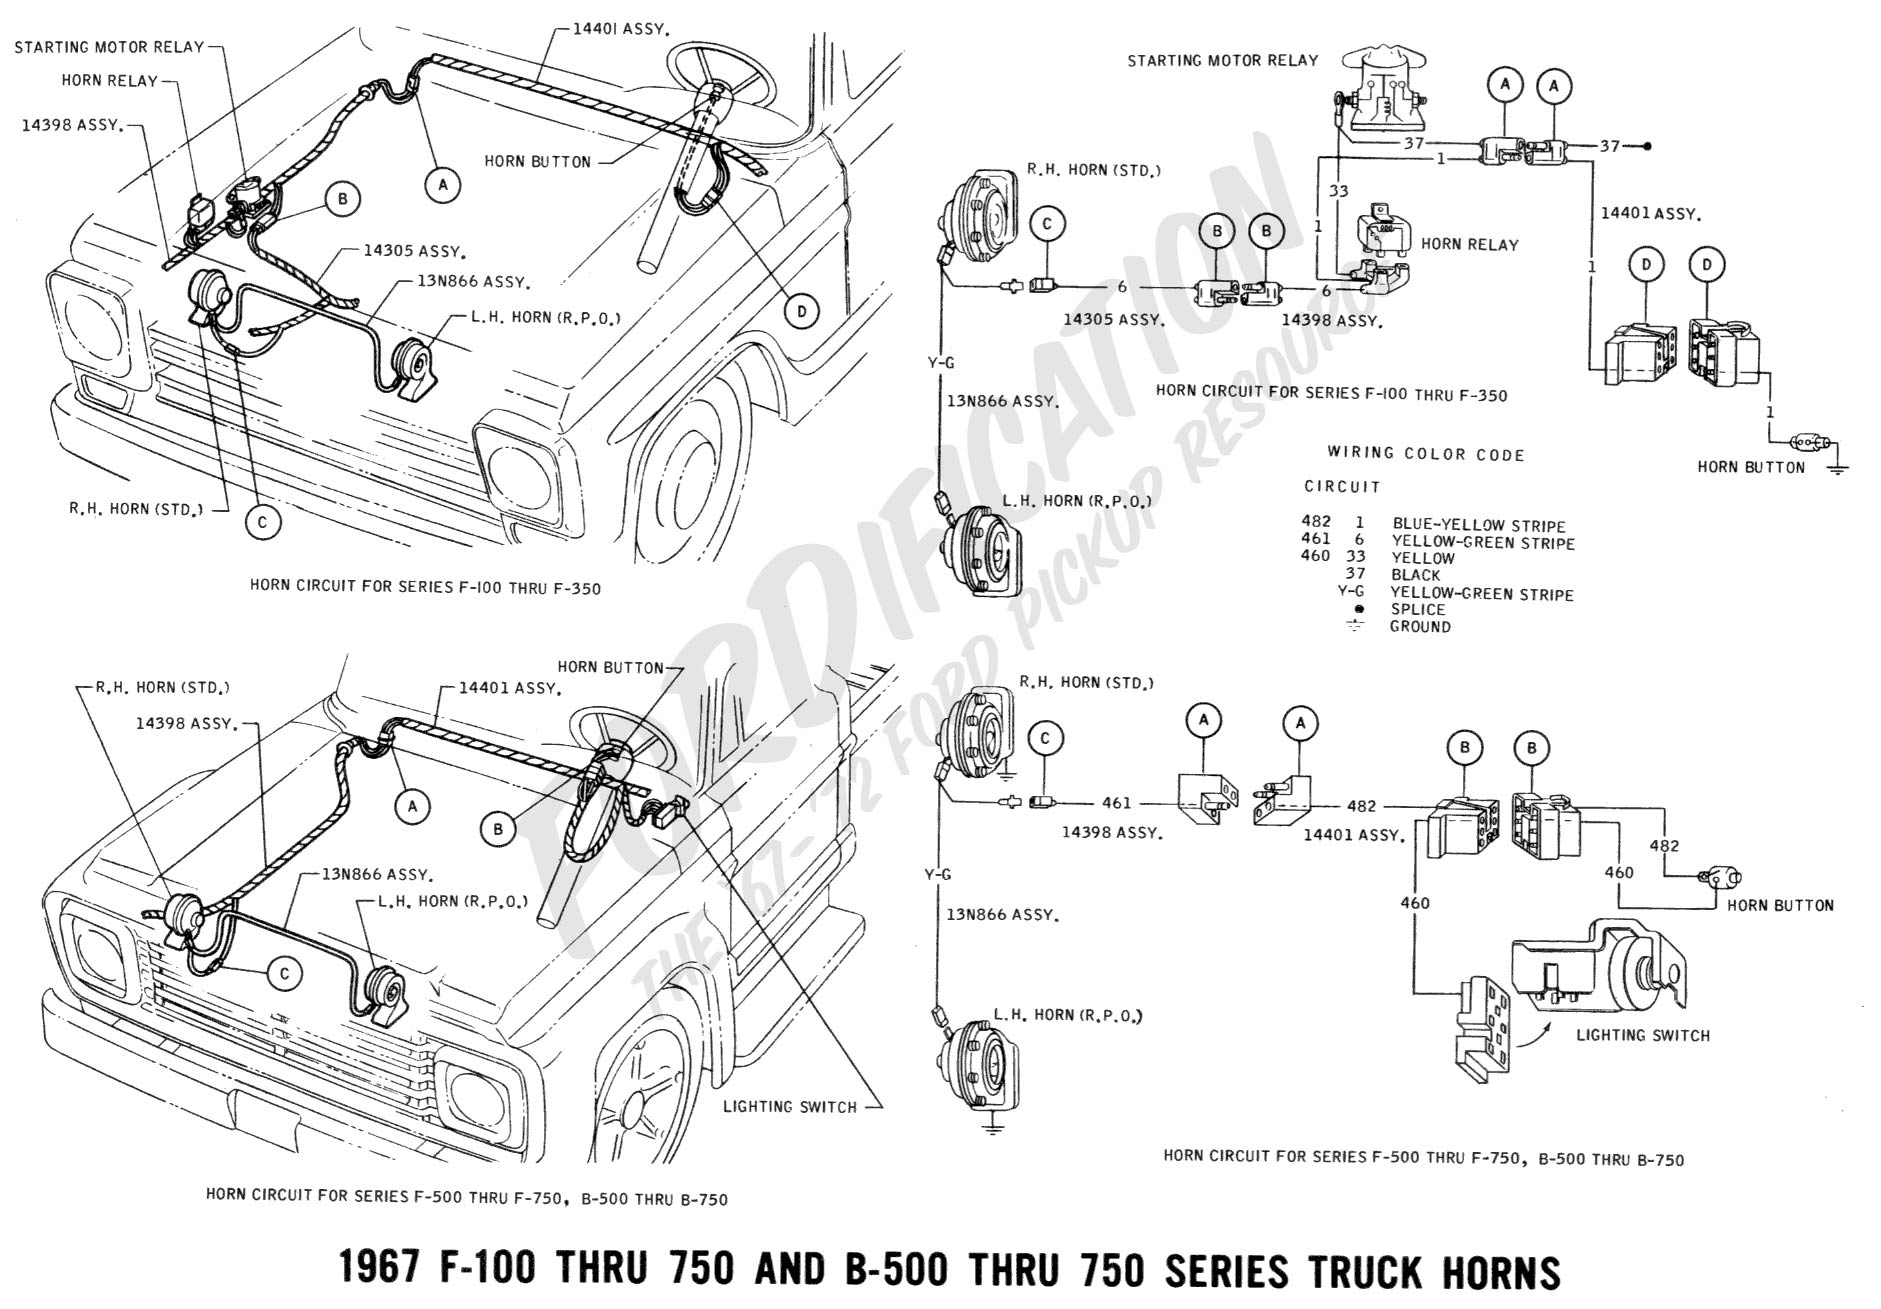 ford truck technical drawings and schematics section h wiring rh fordification com 1980 Corvette Fuse Box Diagram 1978 Corvette Fuse Box Diagram